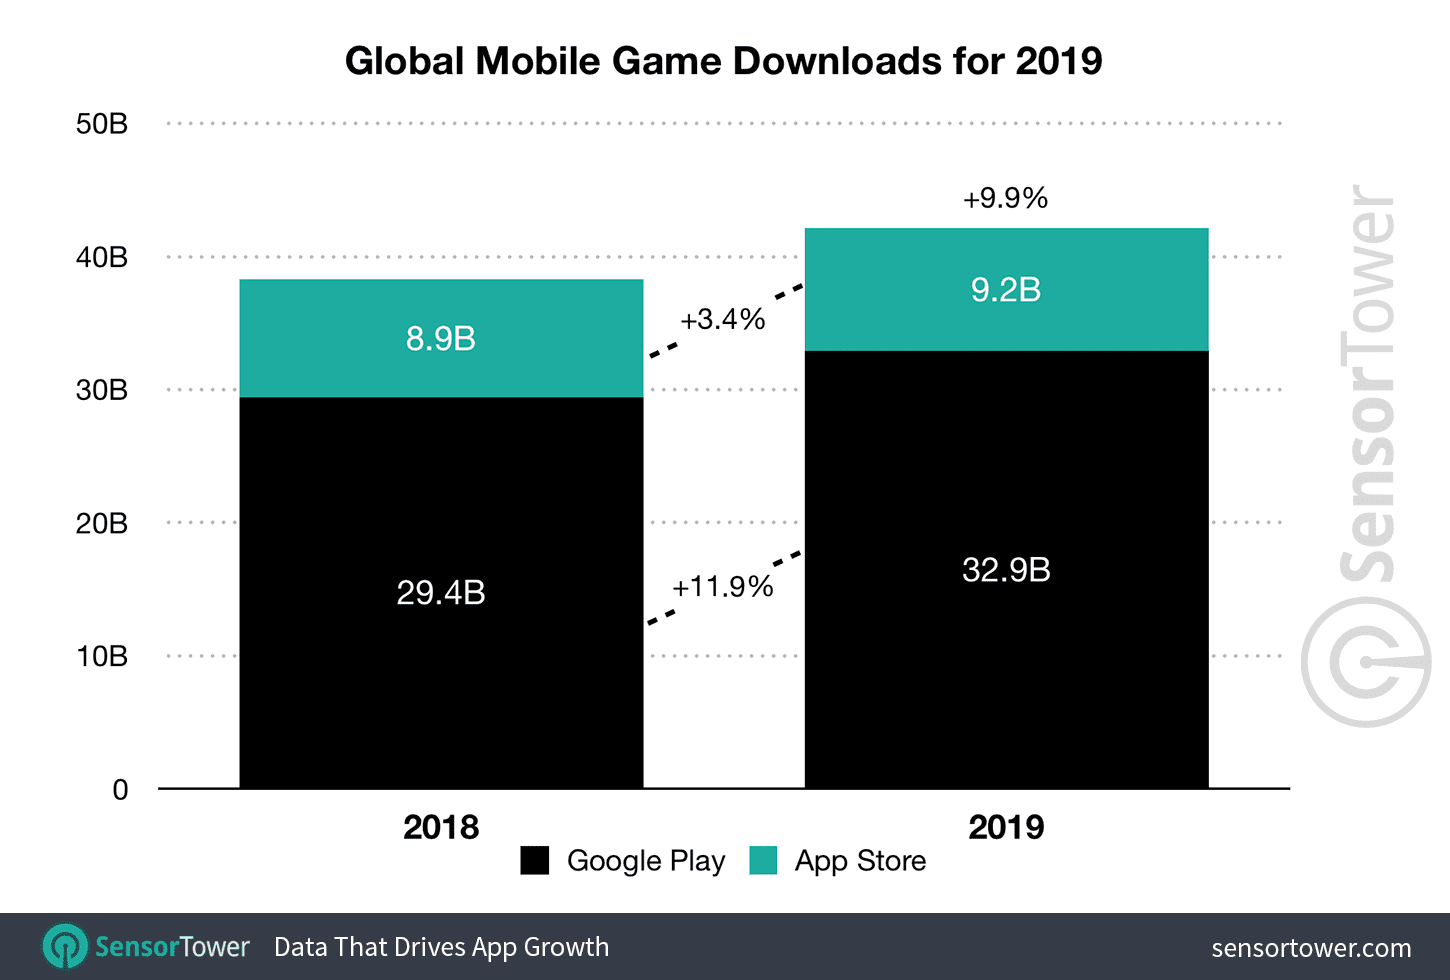 Global Game downloads for 2019